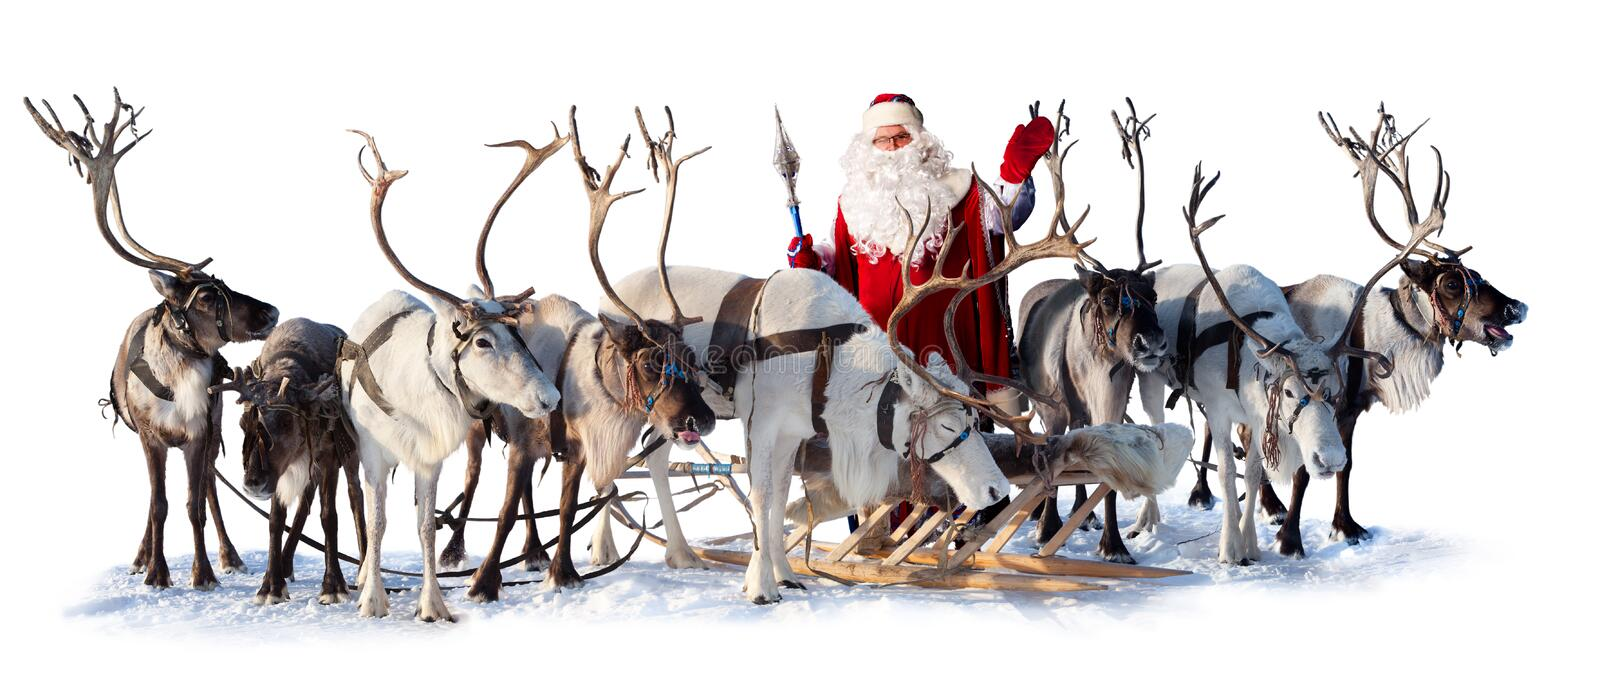 Santa Claus and his deer. Santa Claus are near his deer in harness on the white background. He welcomes you and is waving his hand royalty free stock images